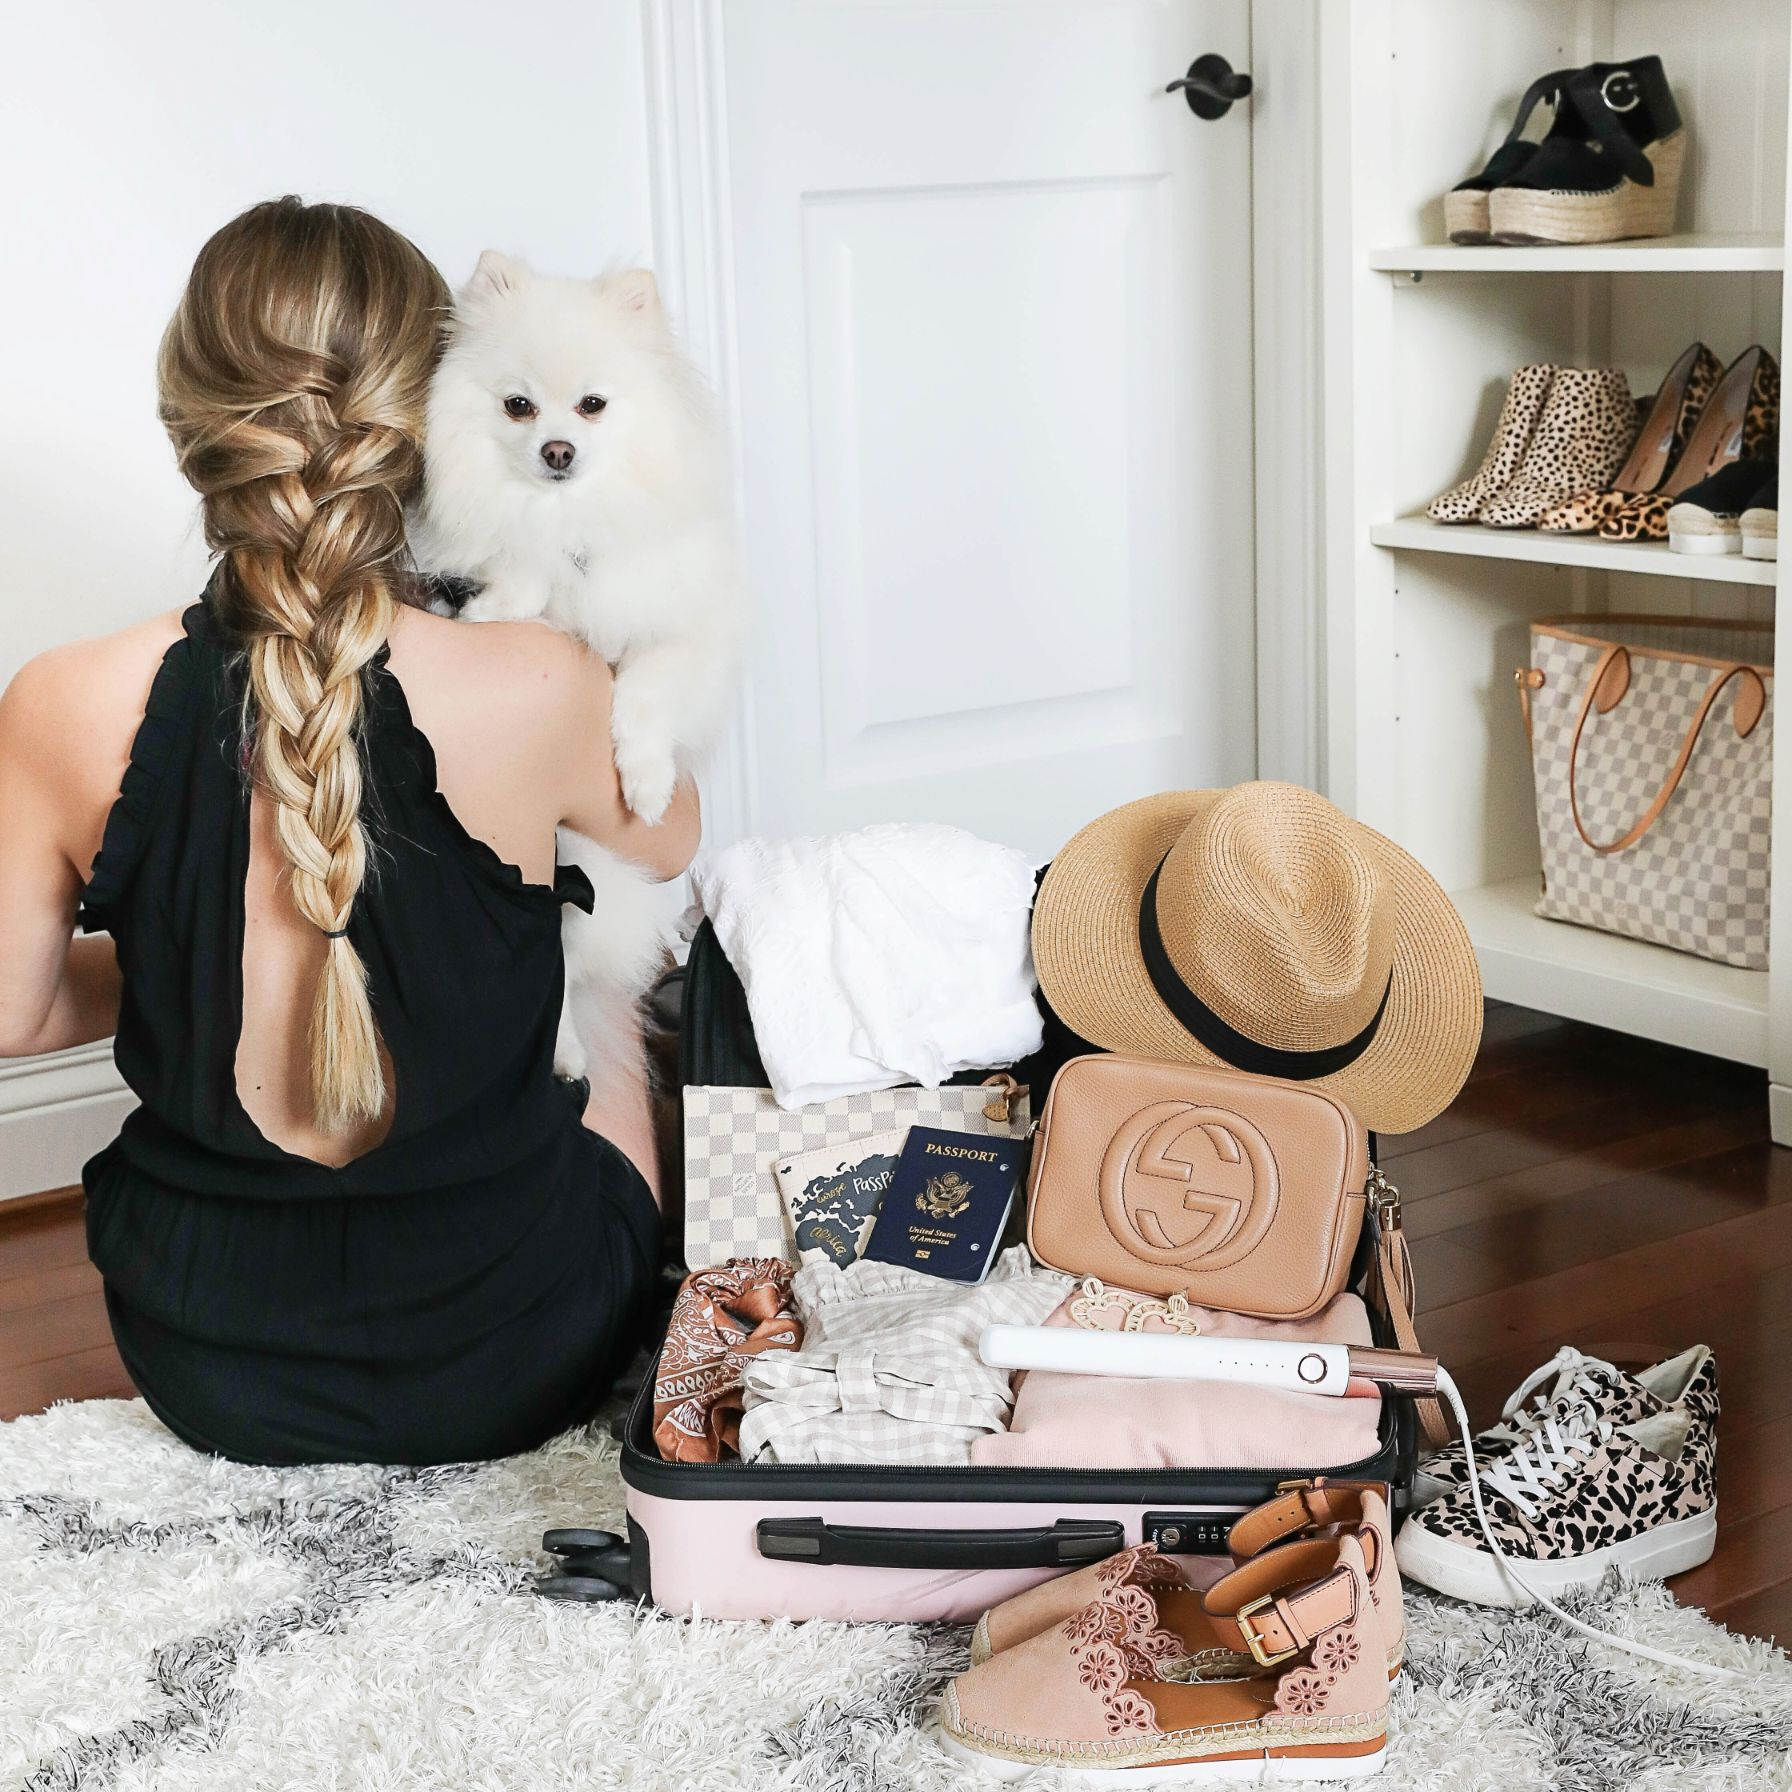 Weekend packing tips short vacation suitcase luggage lifestyle fashion blog daily dose of charm lauren lindmark